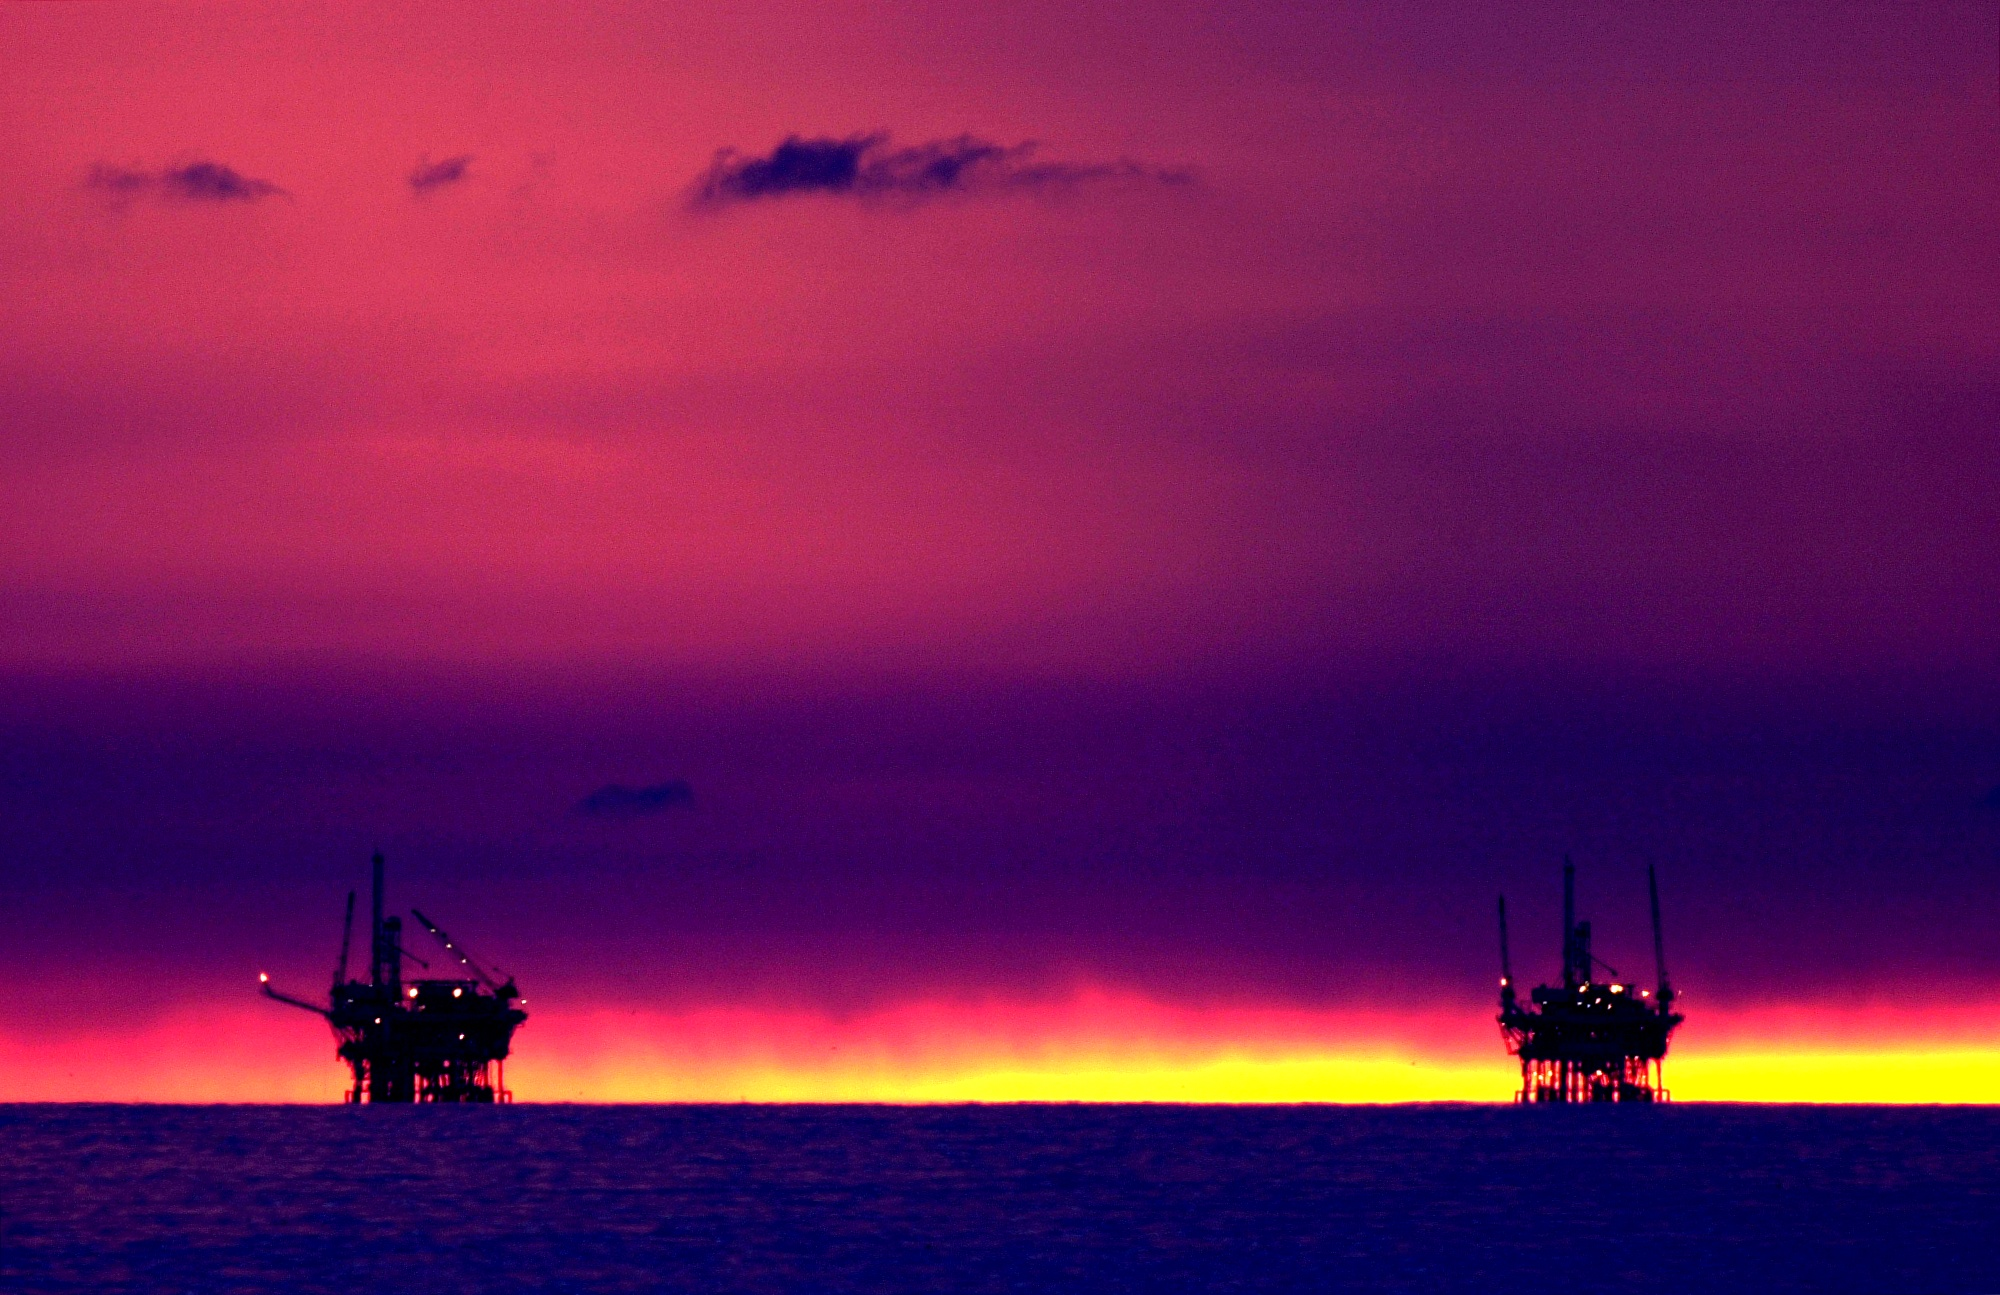 The sunset fades beyond the Hillhouse A, left, and Hillhouse B oil and gas platforms near the Federal Ecological Reserve in the Santa Barbara Channel near Santa Barbara, CA.